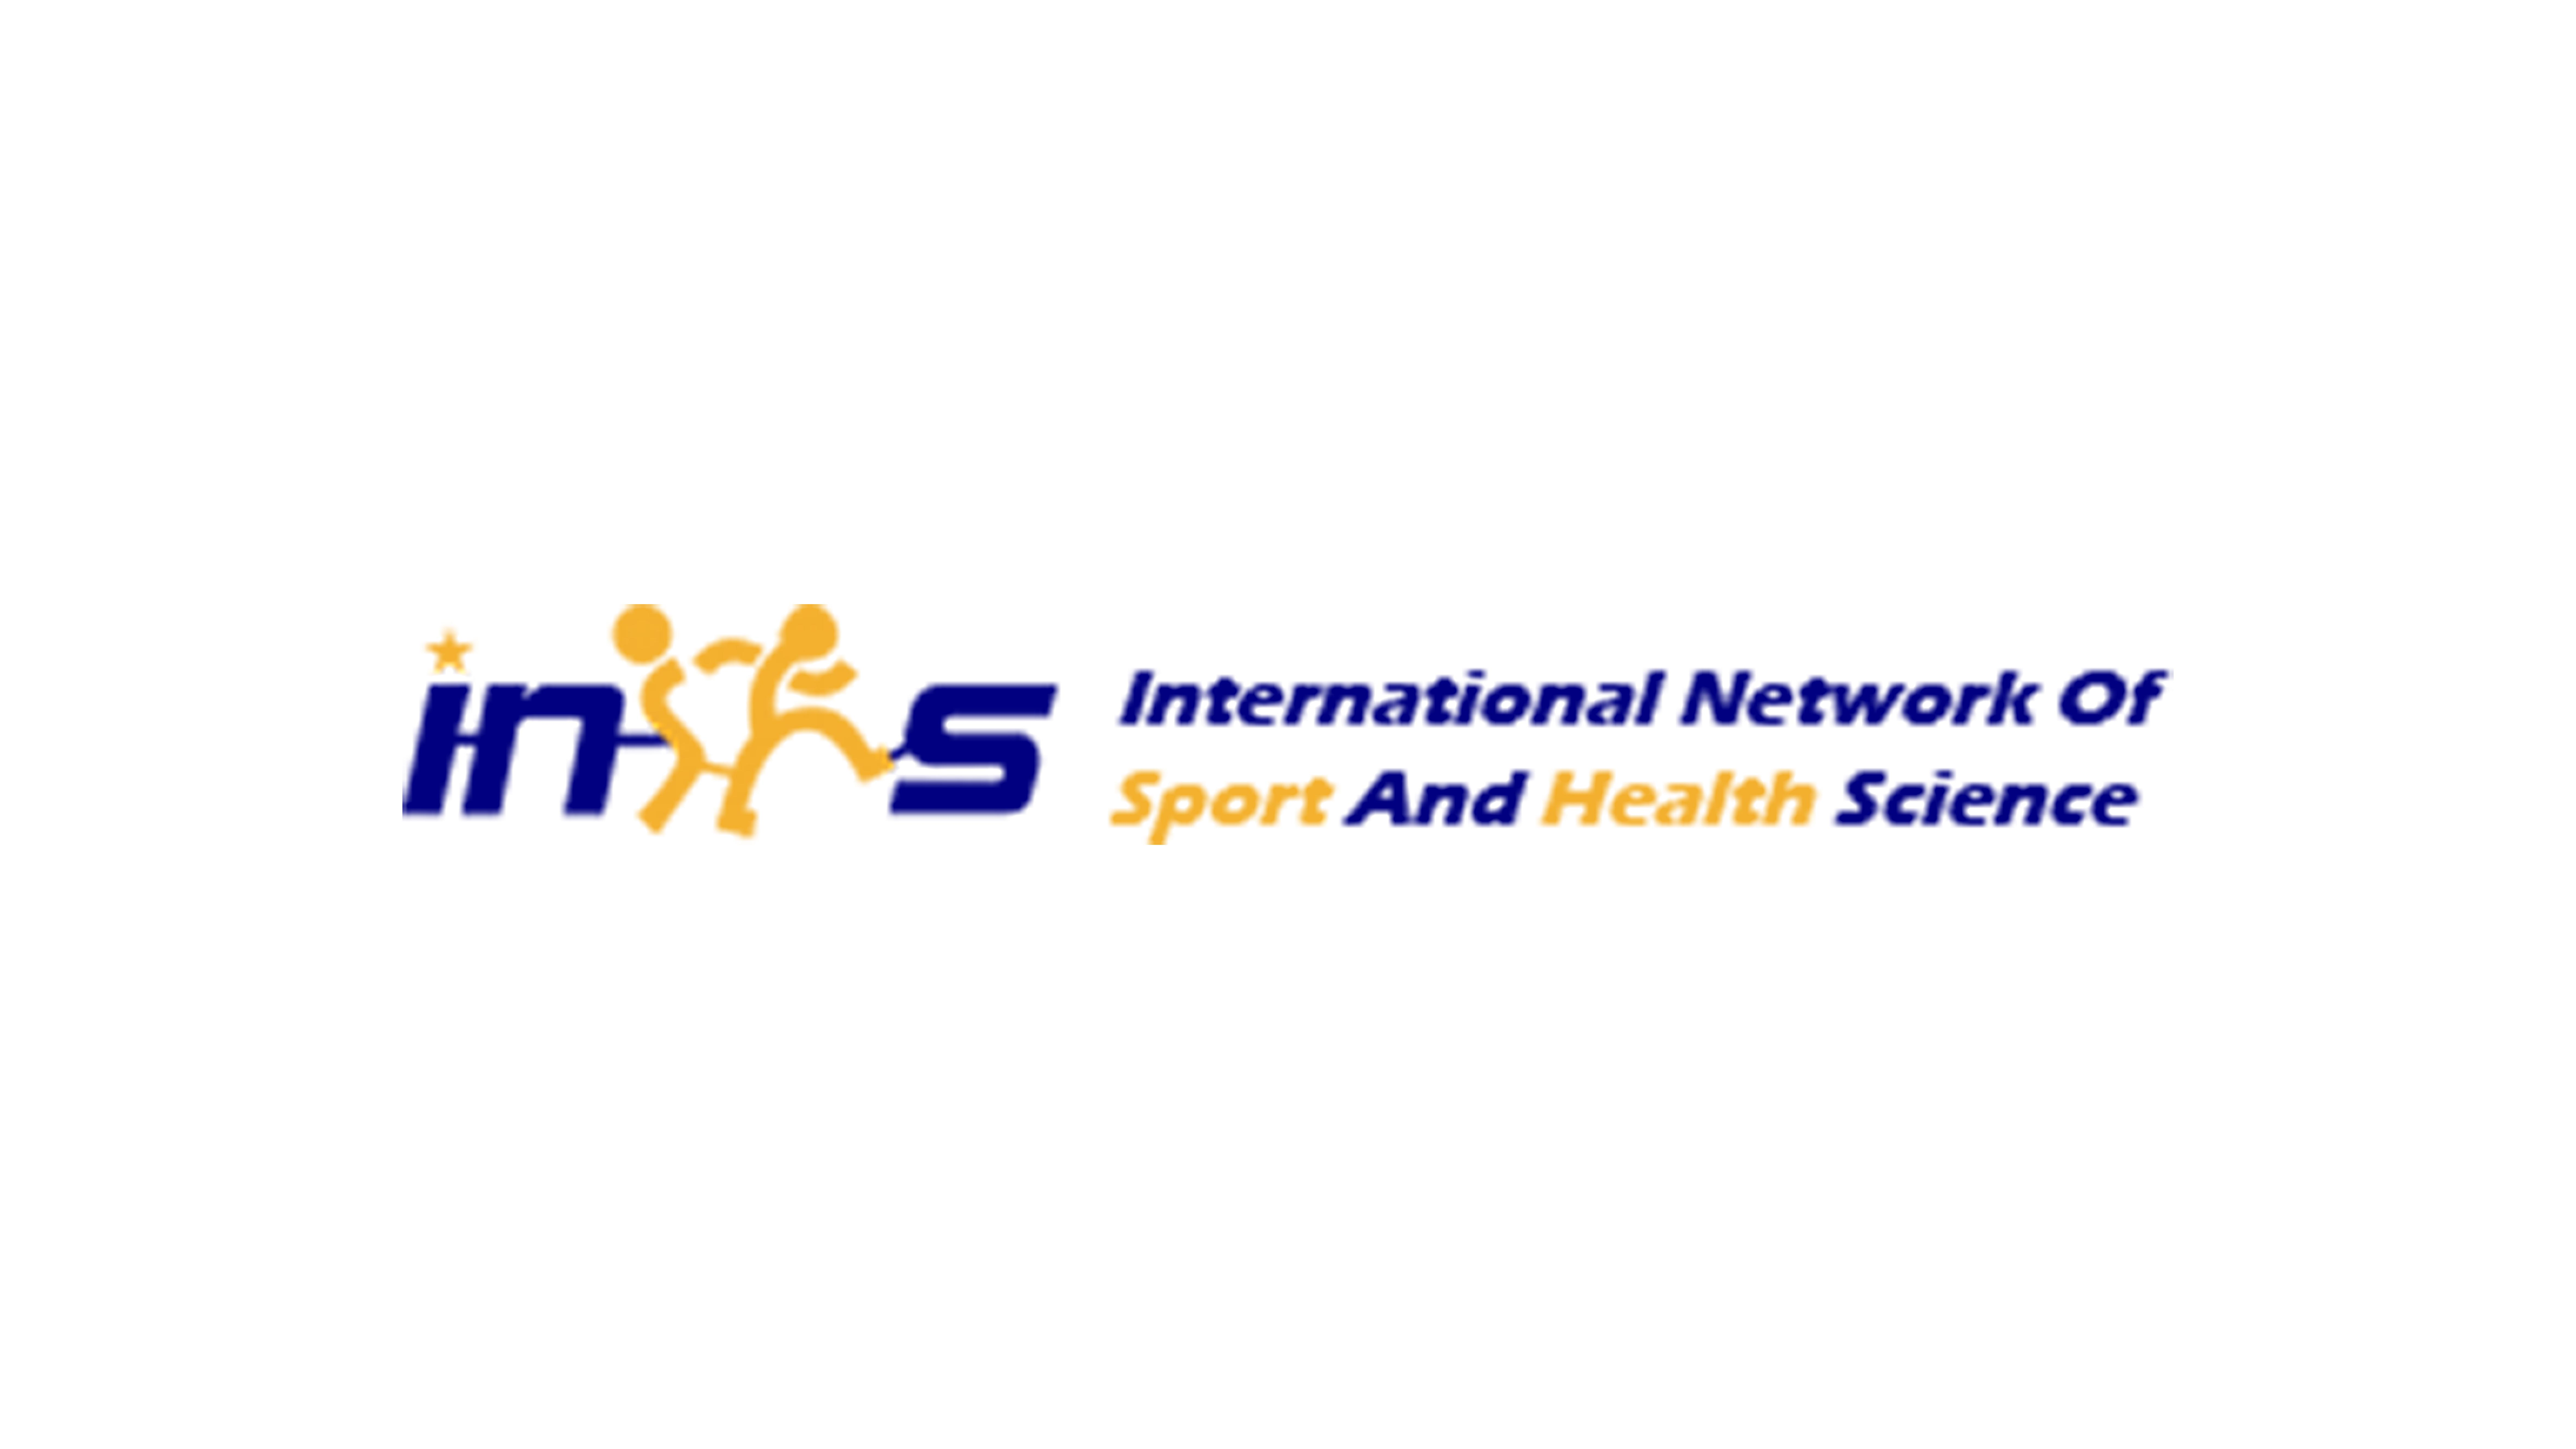 International Network of Sport and Health Science